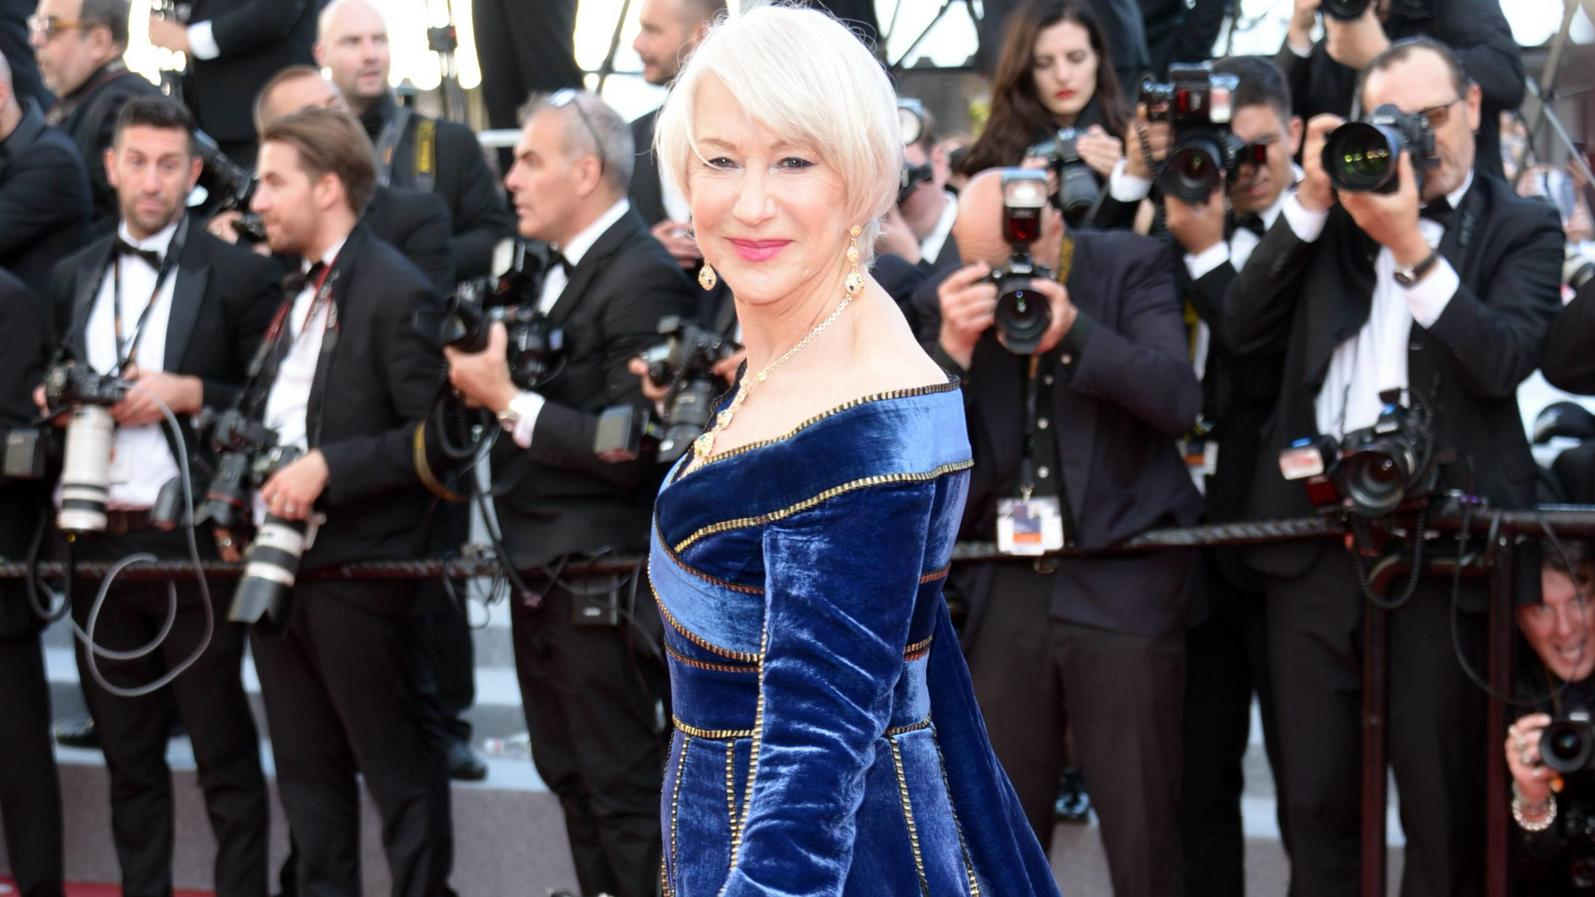 May 12, 2018 - Cannes, France - CANNES, FRANCE - MAY 12: Helen Mirren attends the screening of Girls Of The Sun (Les Filles Du Soleil) during the 71st annual Cannes Film Festival at Palais des Festivals on May 12, 2018 in Cannes, France. Cannes Franc